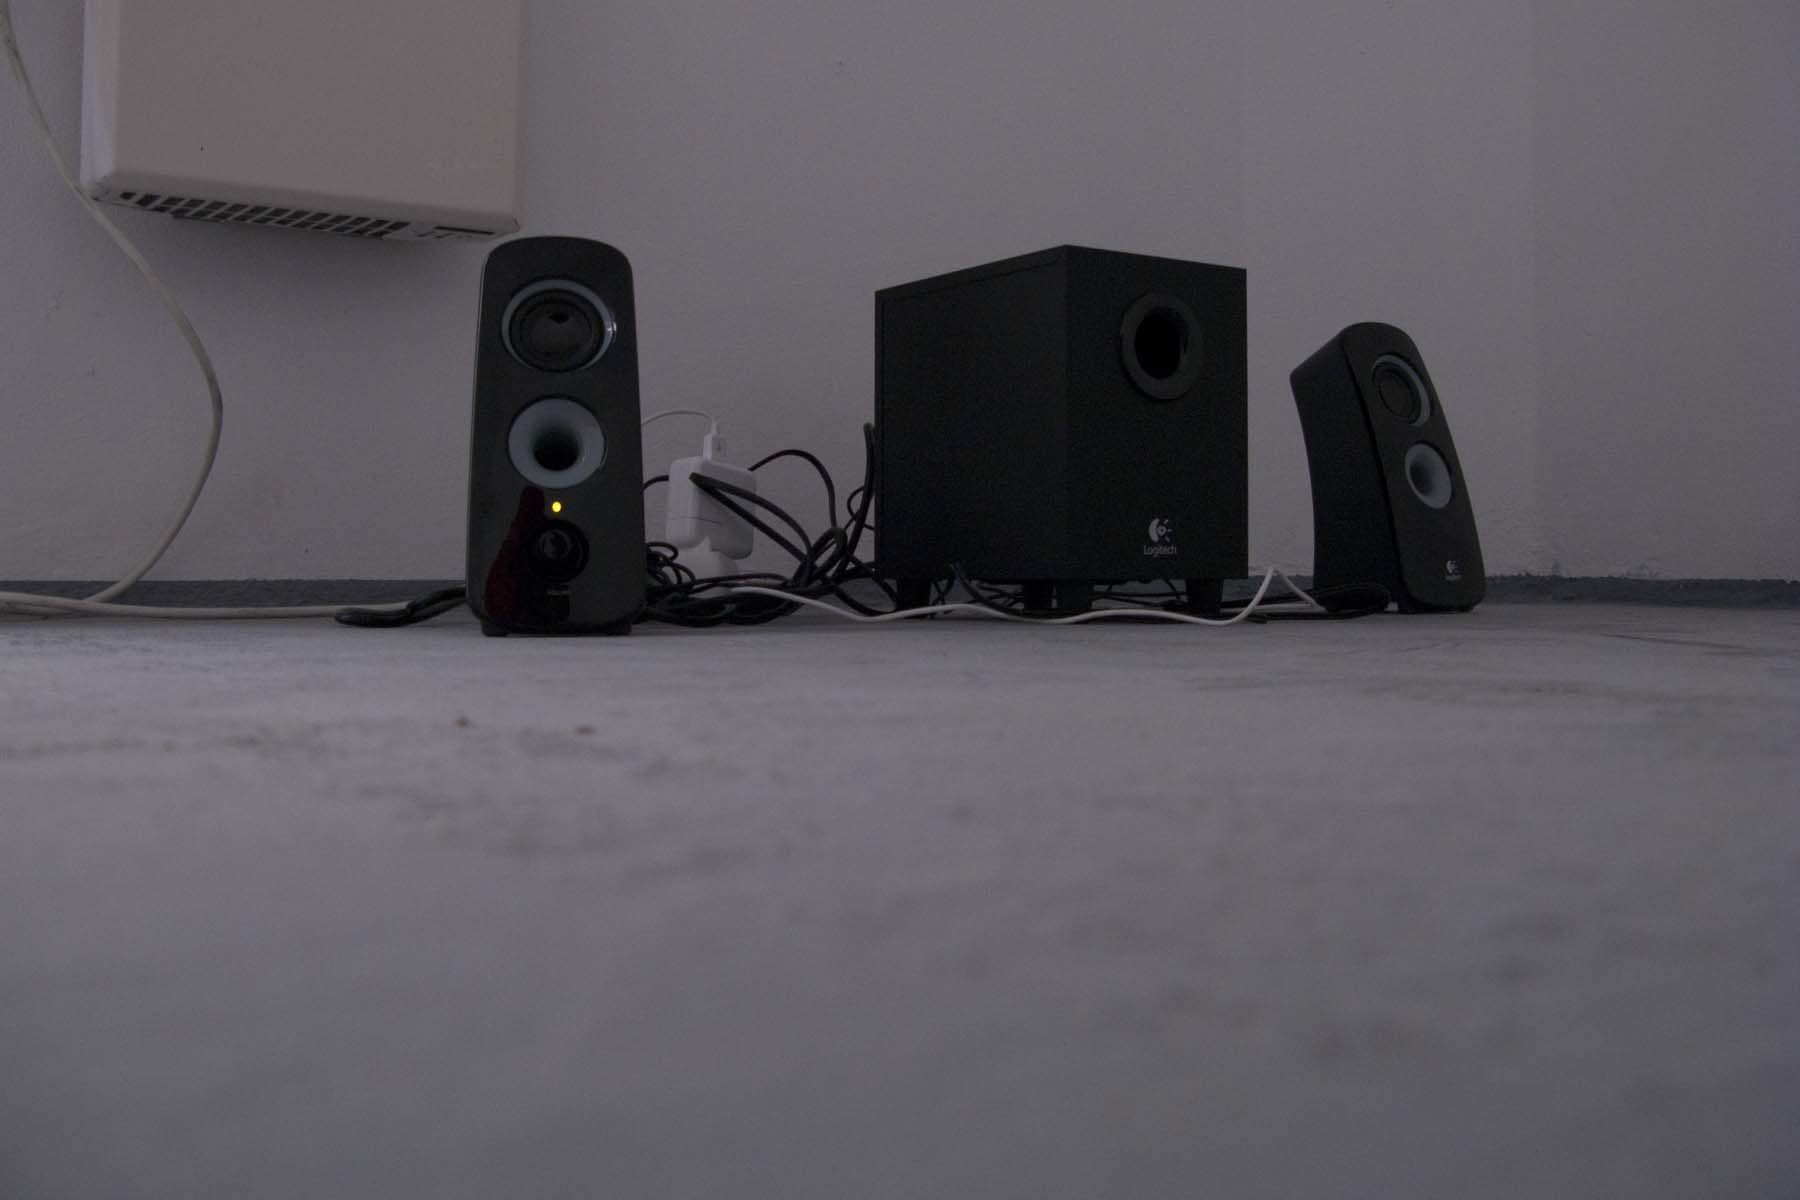 N. Cvijanović, Chronos devouring one of his children, 2010, loudspeaker, sound, 6'07'', loop